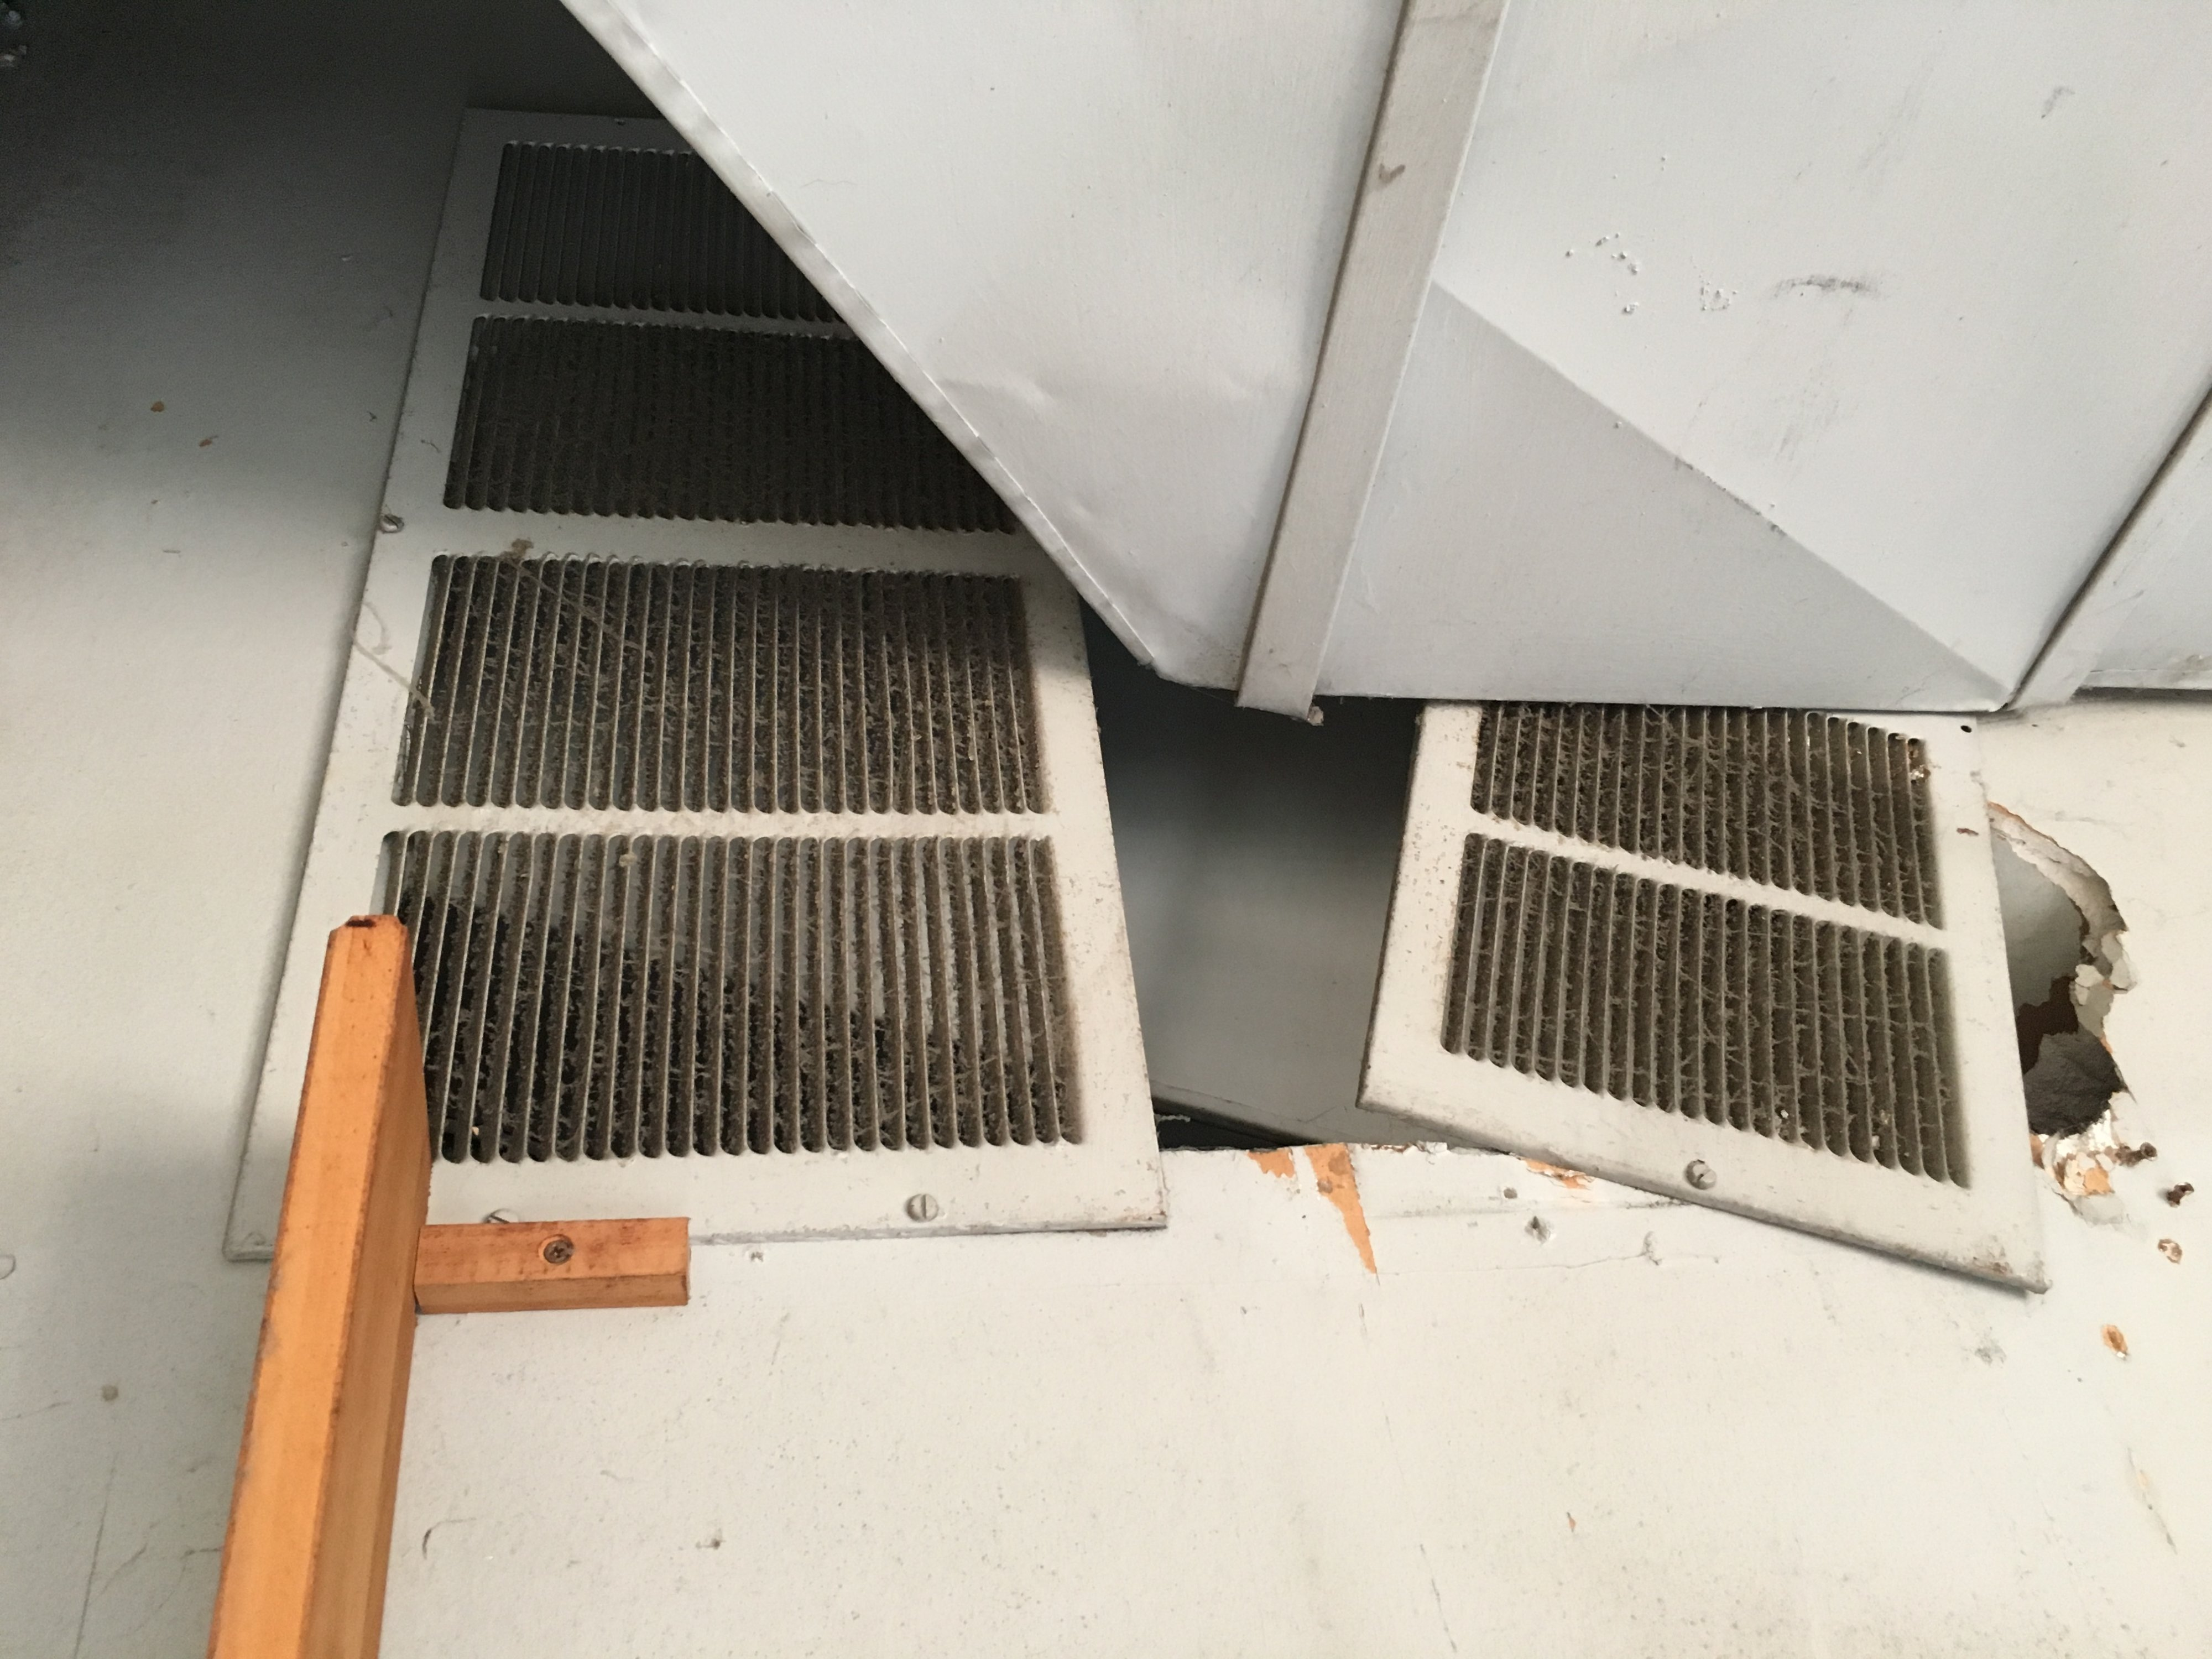 Venting a gas furnace